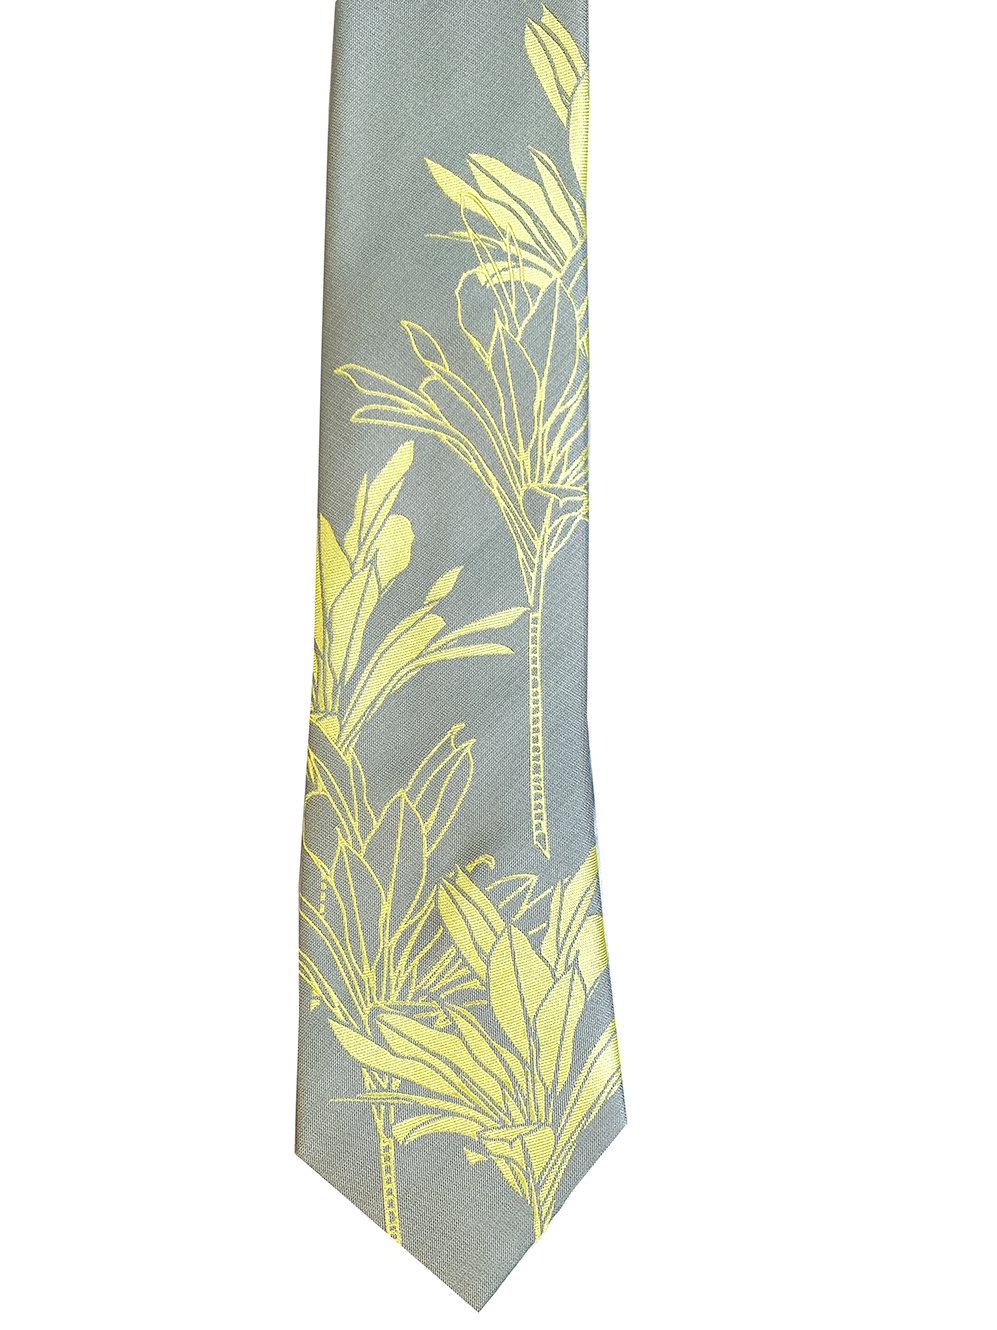 Ti Plant Grey/Yellow Modern Necktie